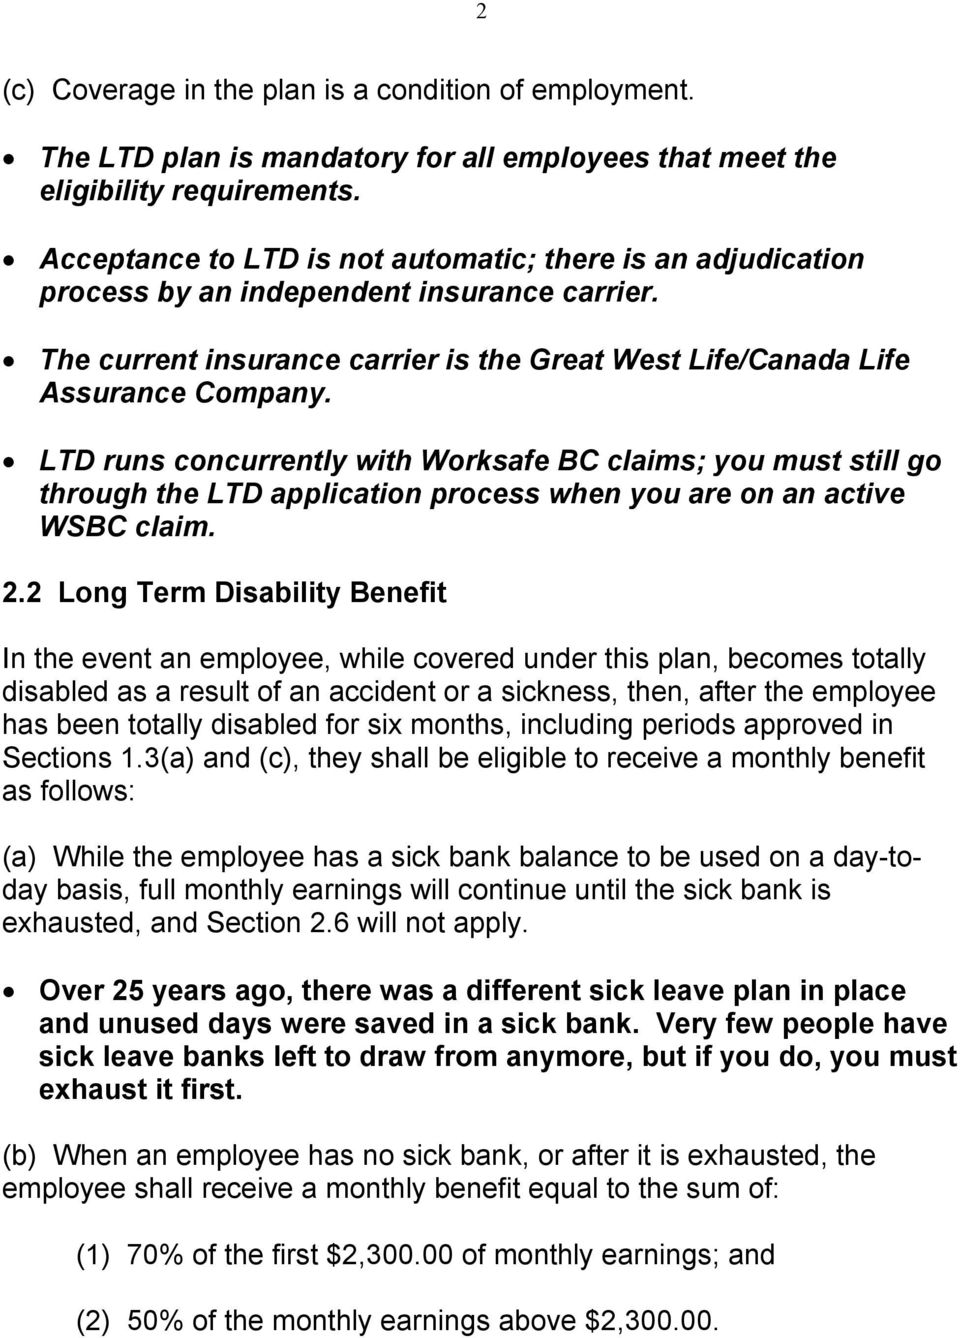 LTD runs concurrently with Worksafe BC claims; you must still go through the LTD application process when you are on an active WSBC claim. 2.